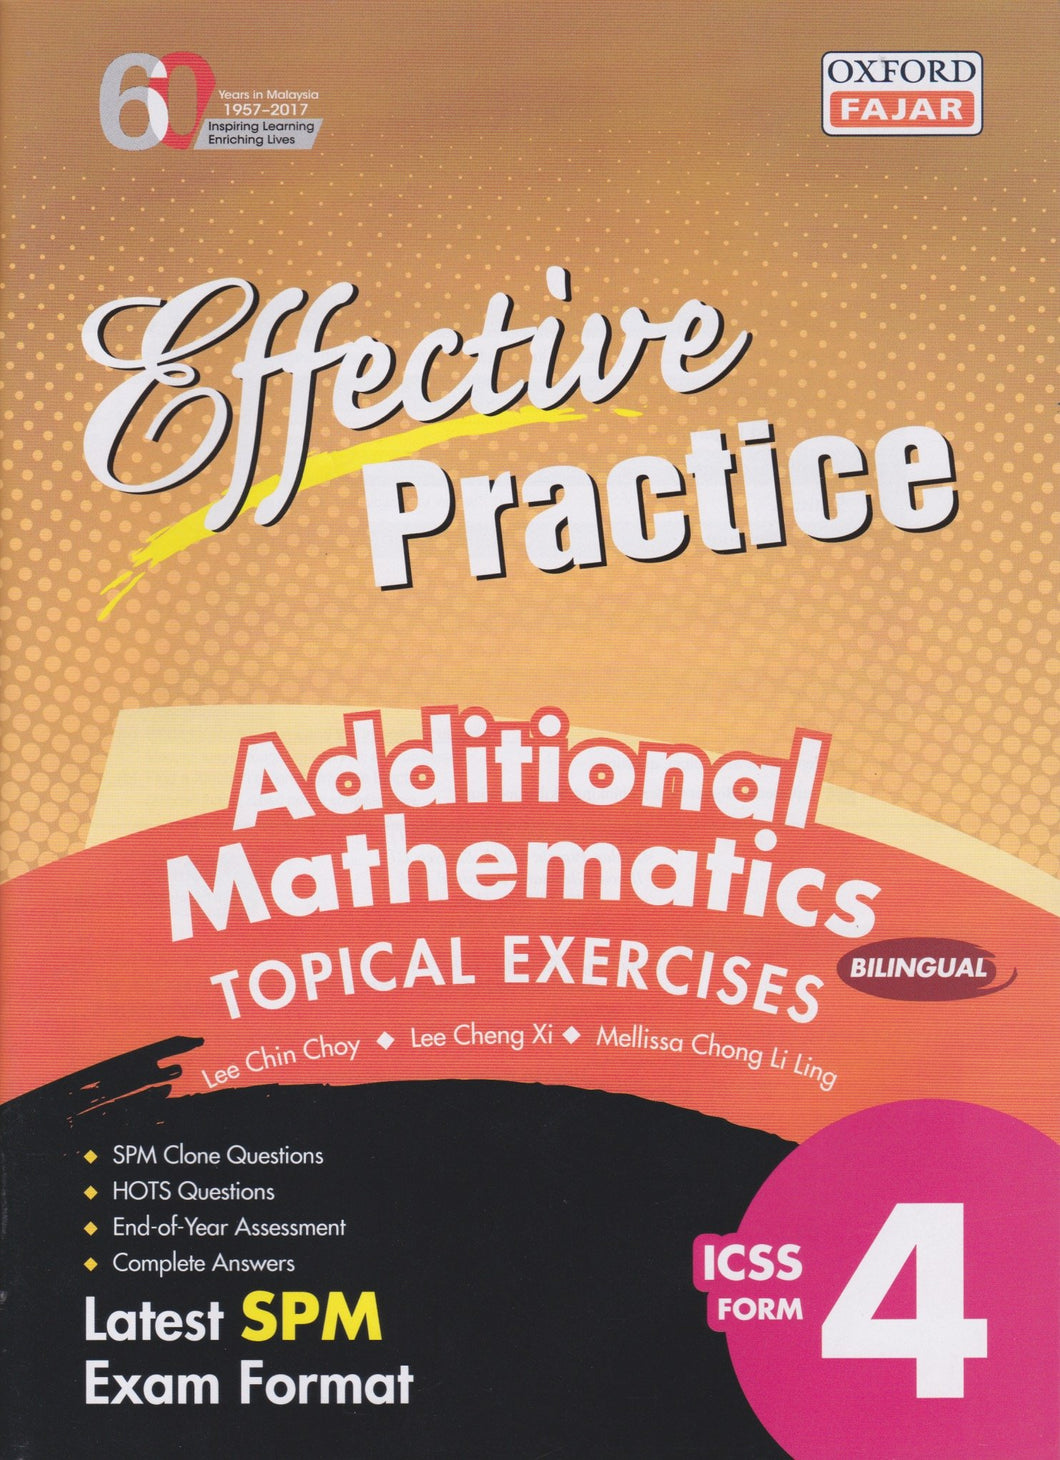 Oxford Fajar-Effective Practice: Additional Mathematics Topical Exercises Form 4-9789834722708-BukuDBP.com